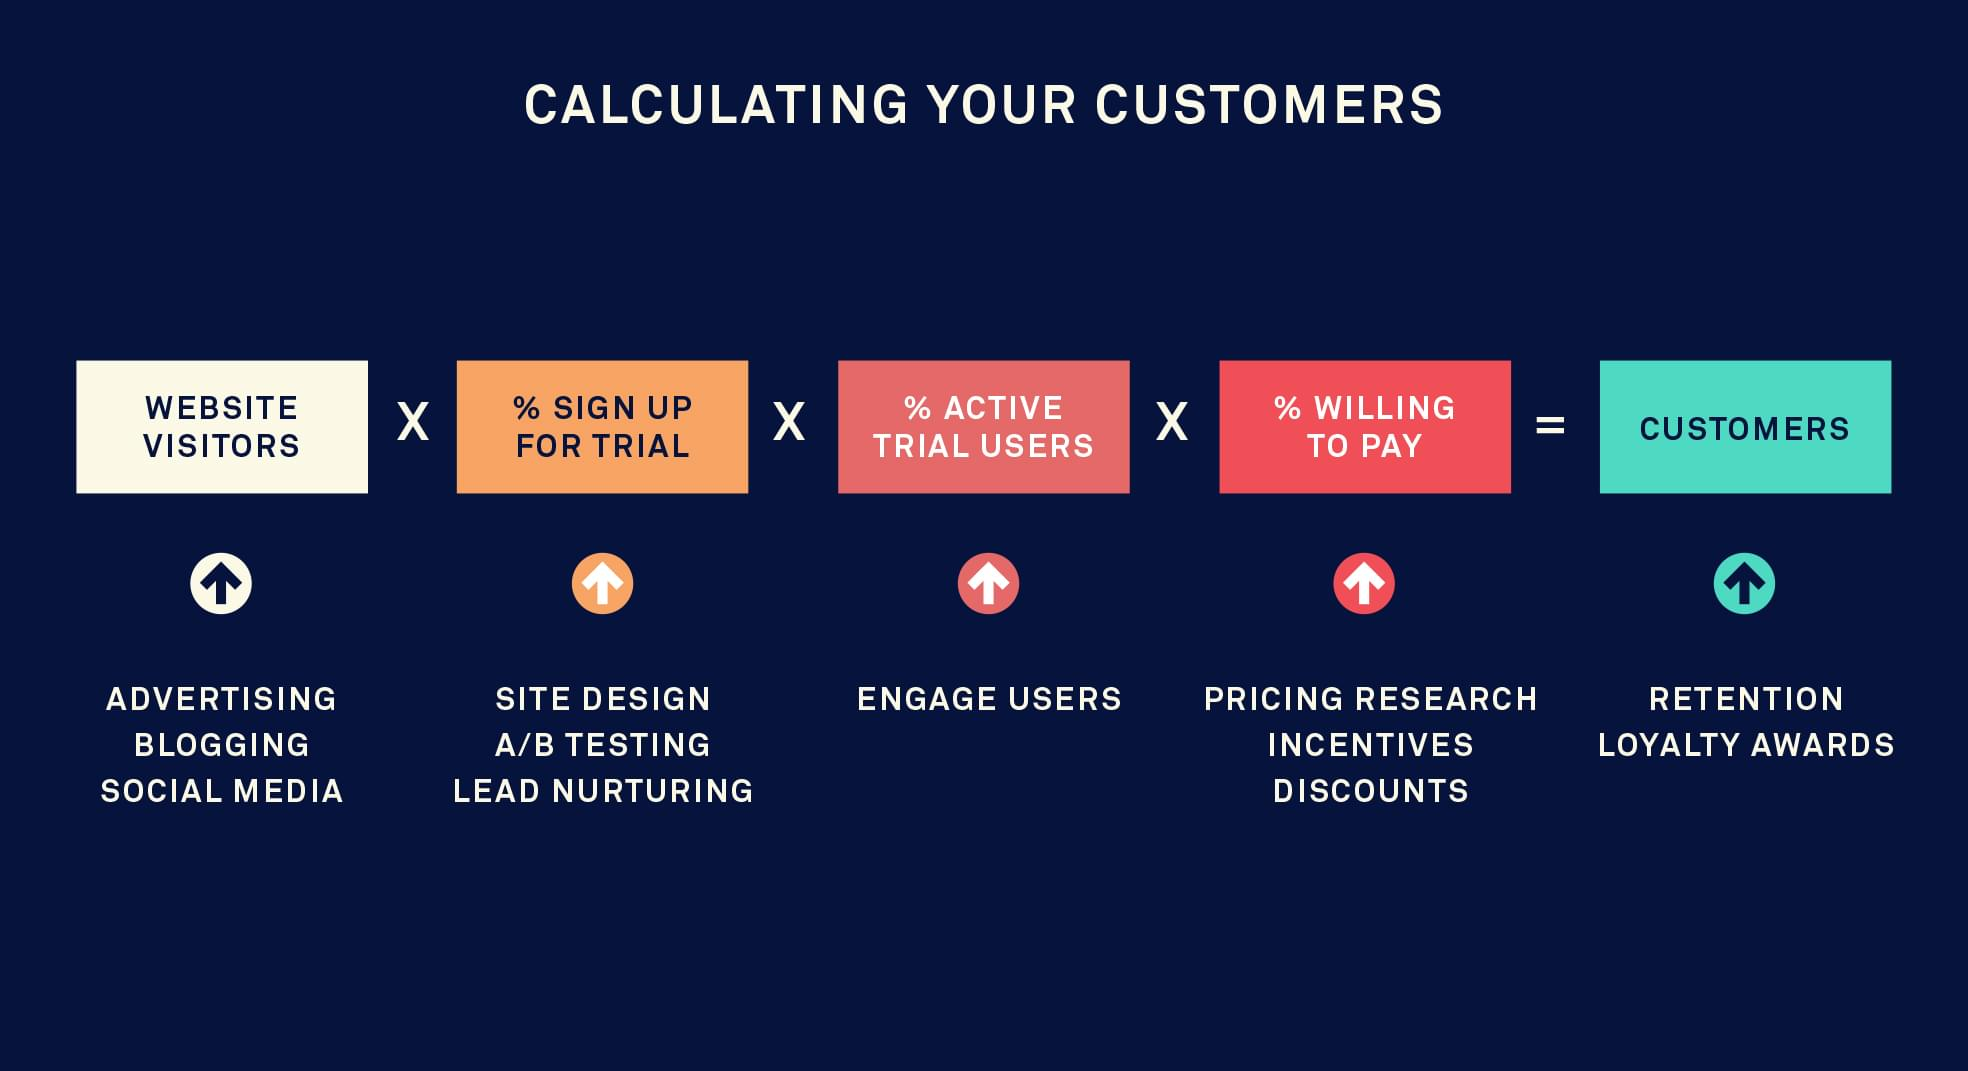 calculating engagement is vital to quantify your real customers